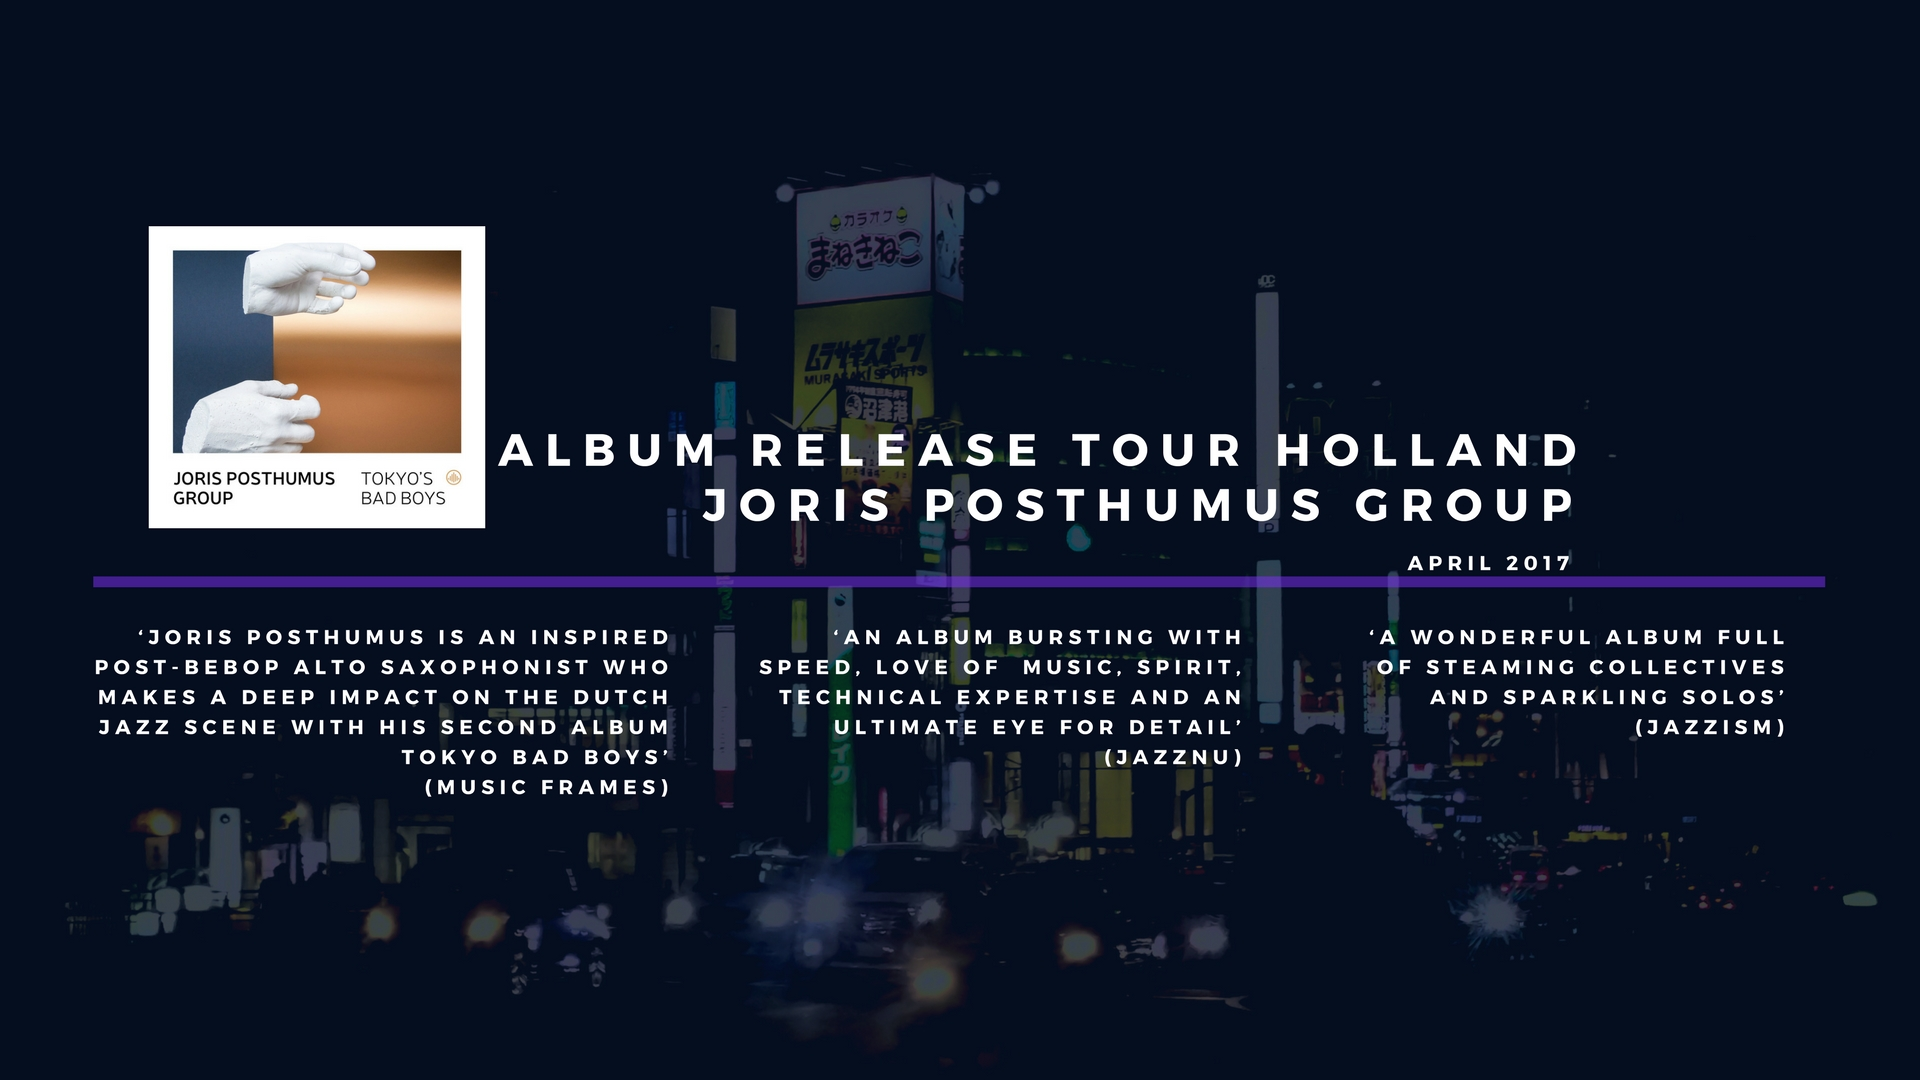 ALBUM-RELEASE-TOUR-HOLLANDwhat-you-think-2